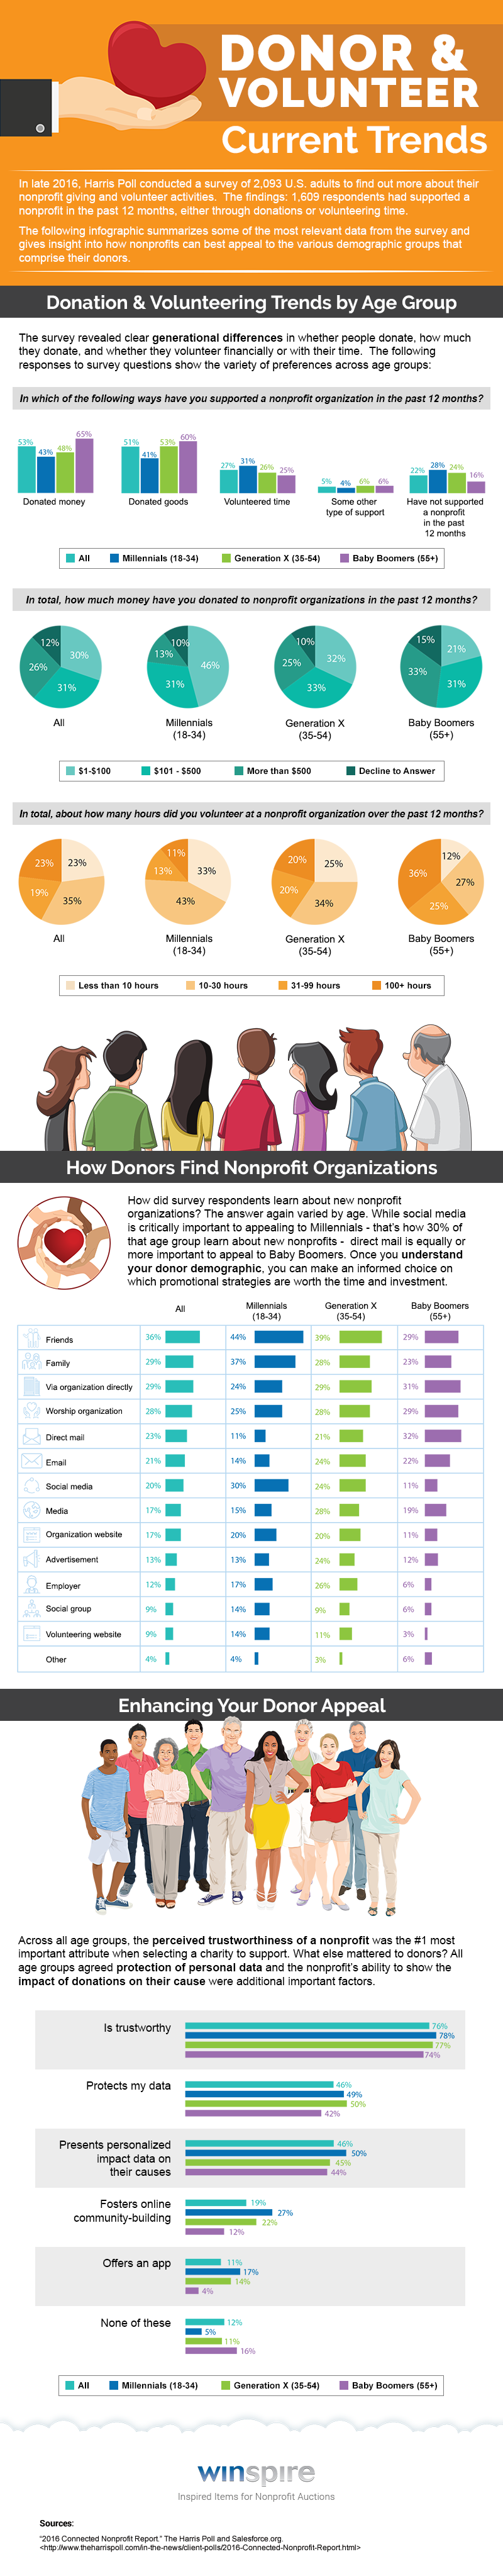 Donor-Volunteer-Trends-2017.png